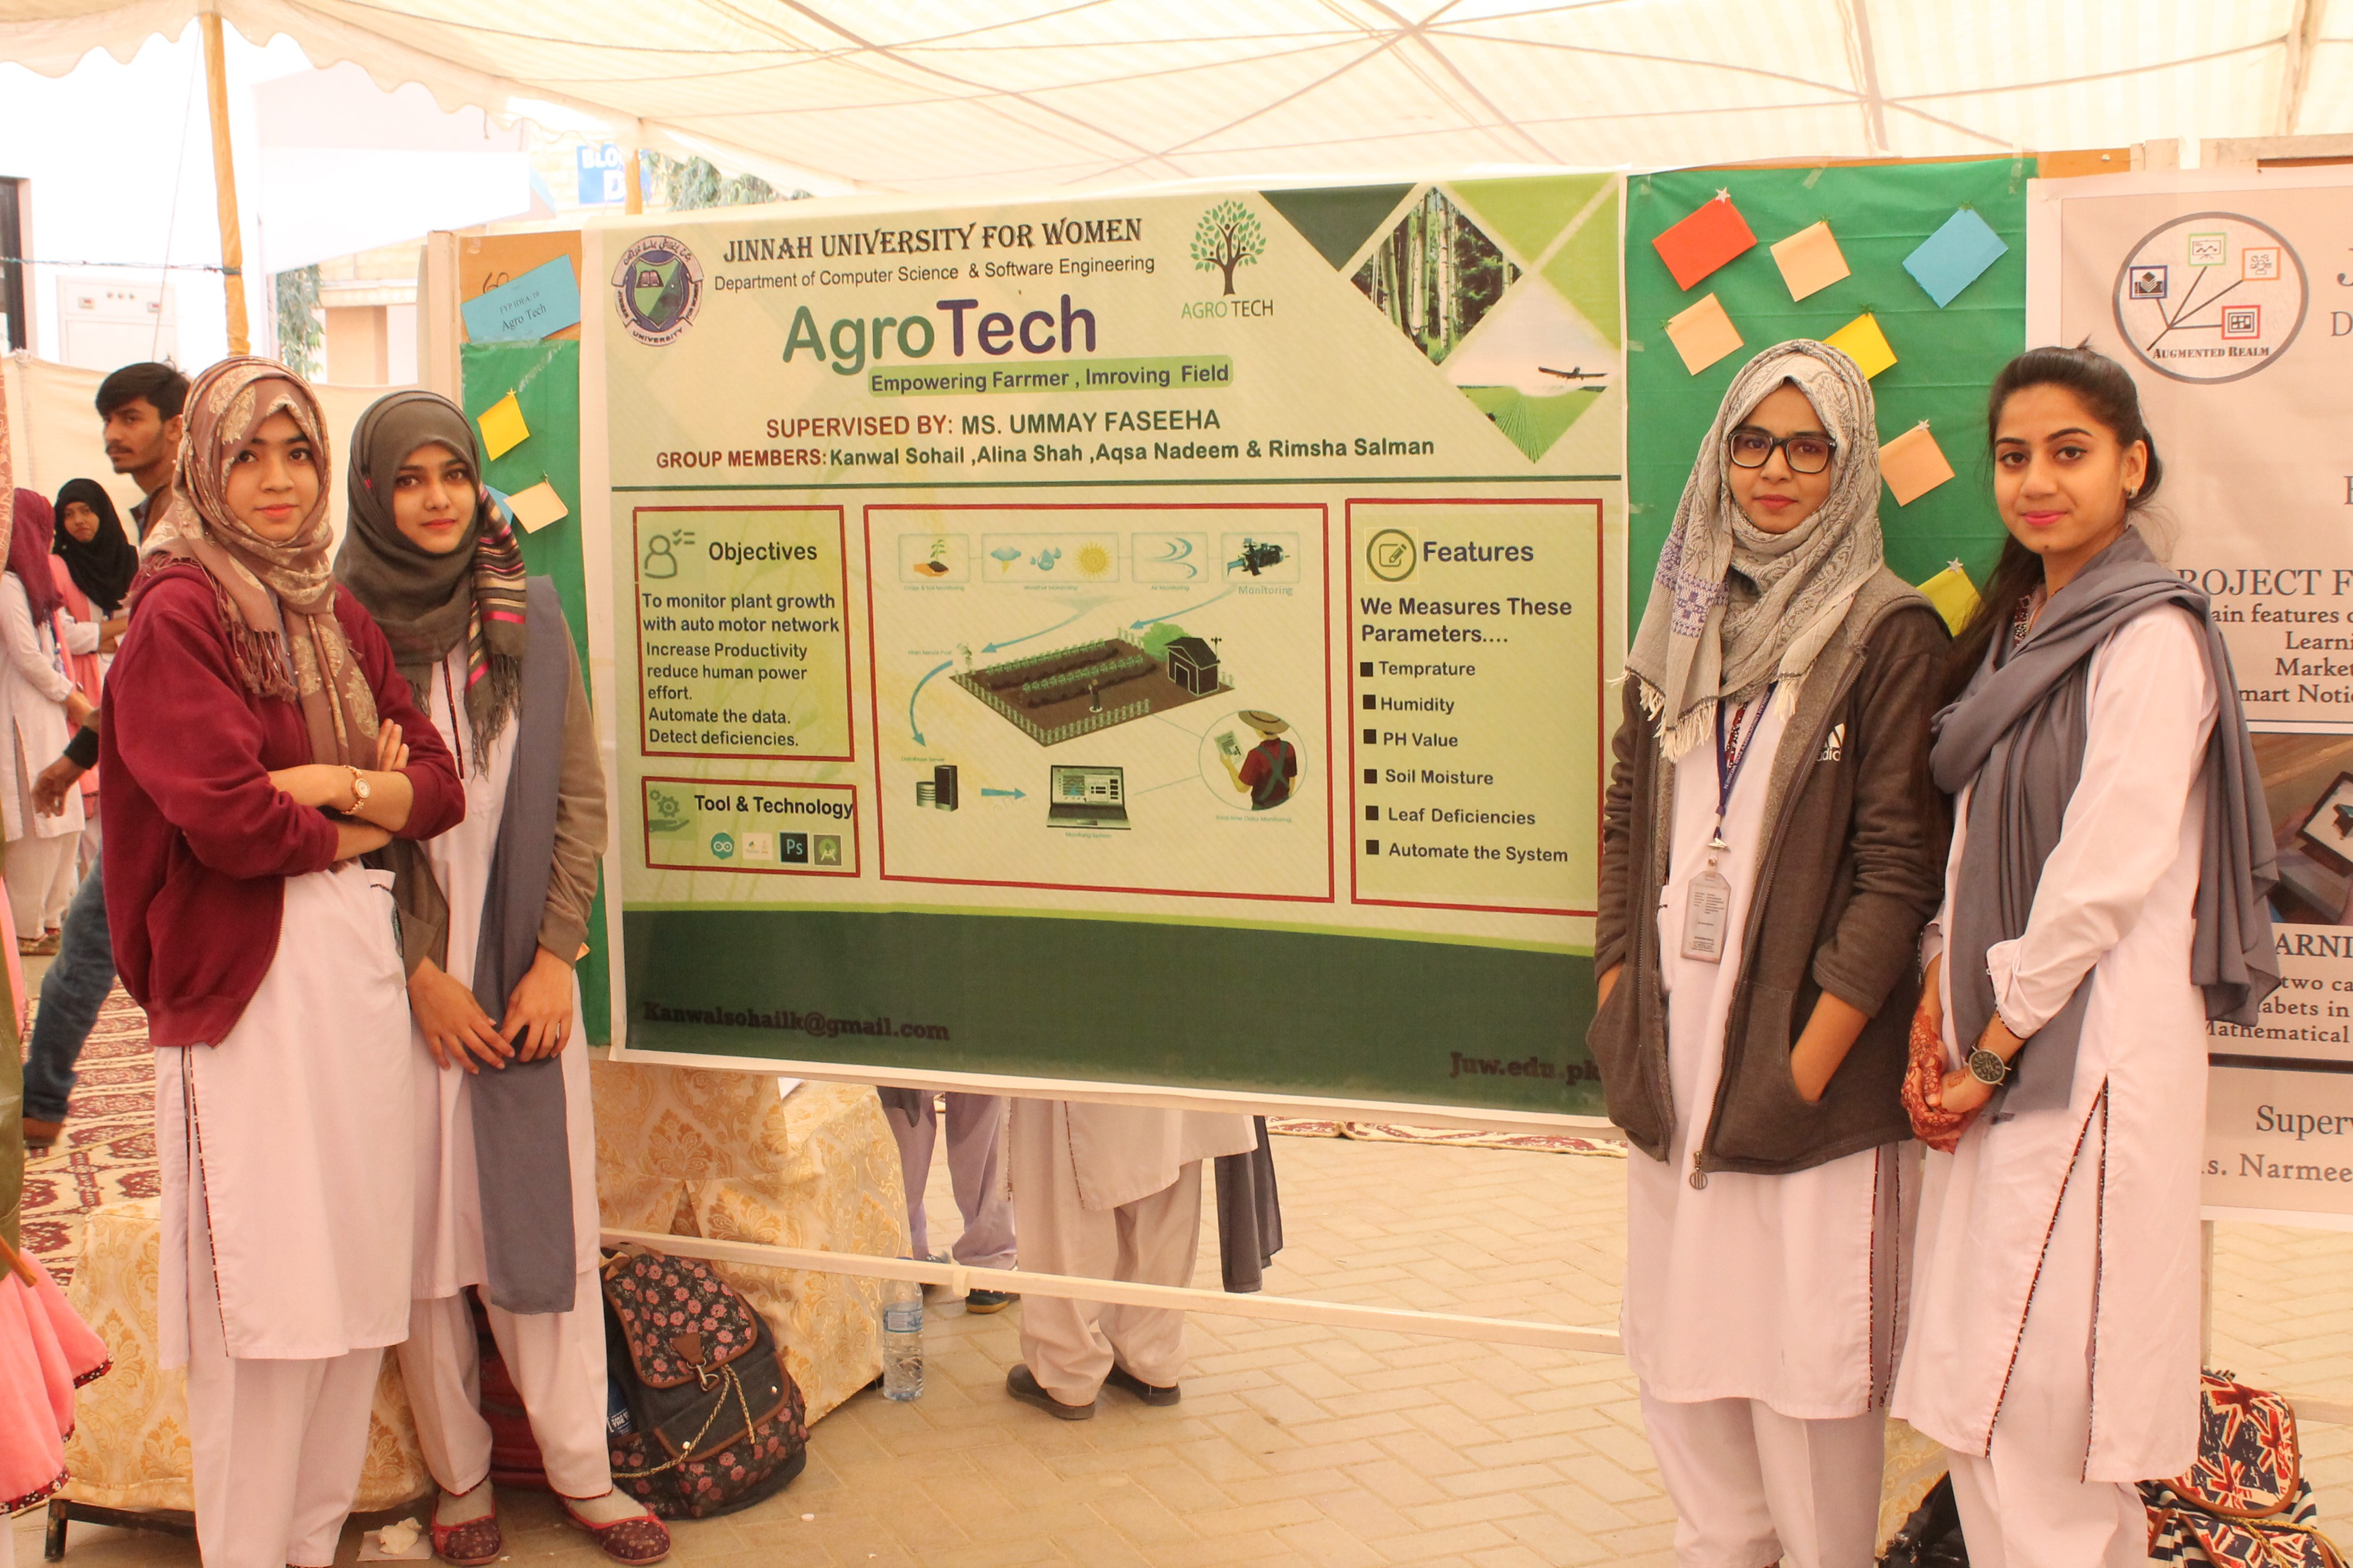 Stalls of [Folio3 Pvt Ltd](http://www.folio3.com/) (Job Fair), [Dronaid](https://www.youtube.com/watch?v=nIcfxTVbpX8) (Project Compeition) and AgroTech (Poster Competition)